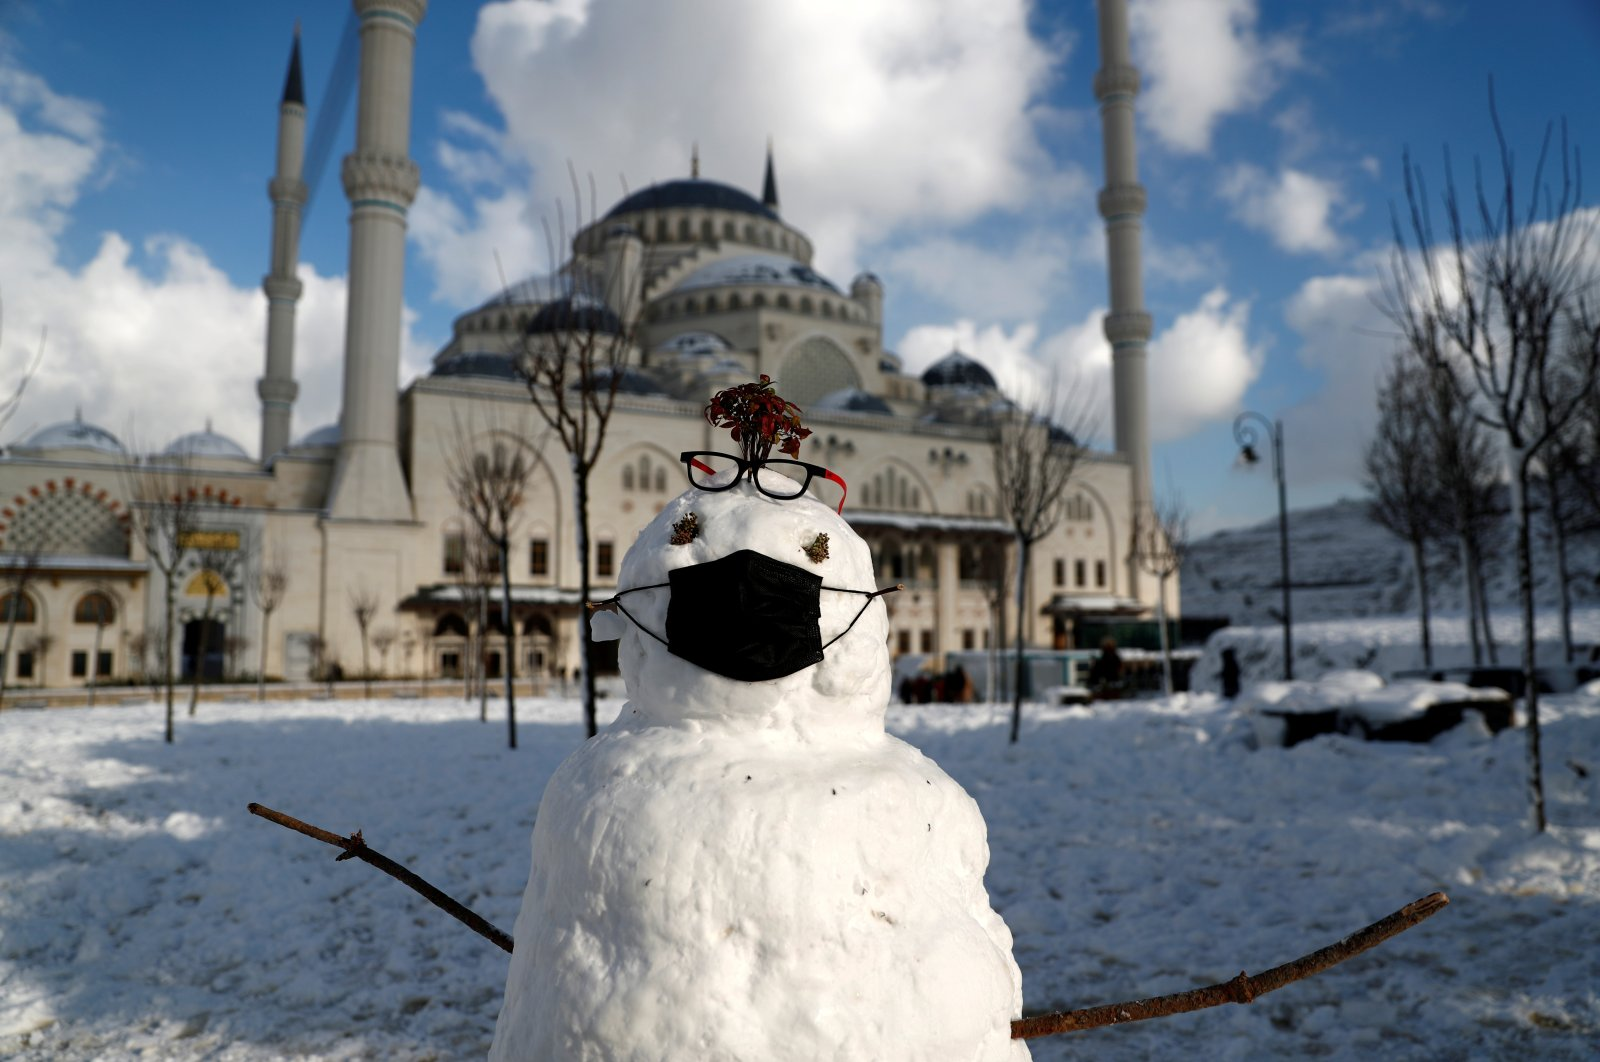 A snowman with a face mask is pictured in front of the Grand Camlica Mosque after snowfall amid the spread of COVID-19 in Istanbul, Turkey, Jan. 18, 2021. (Reuters Photo)